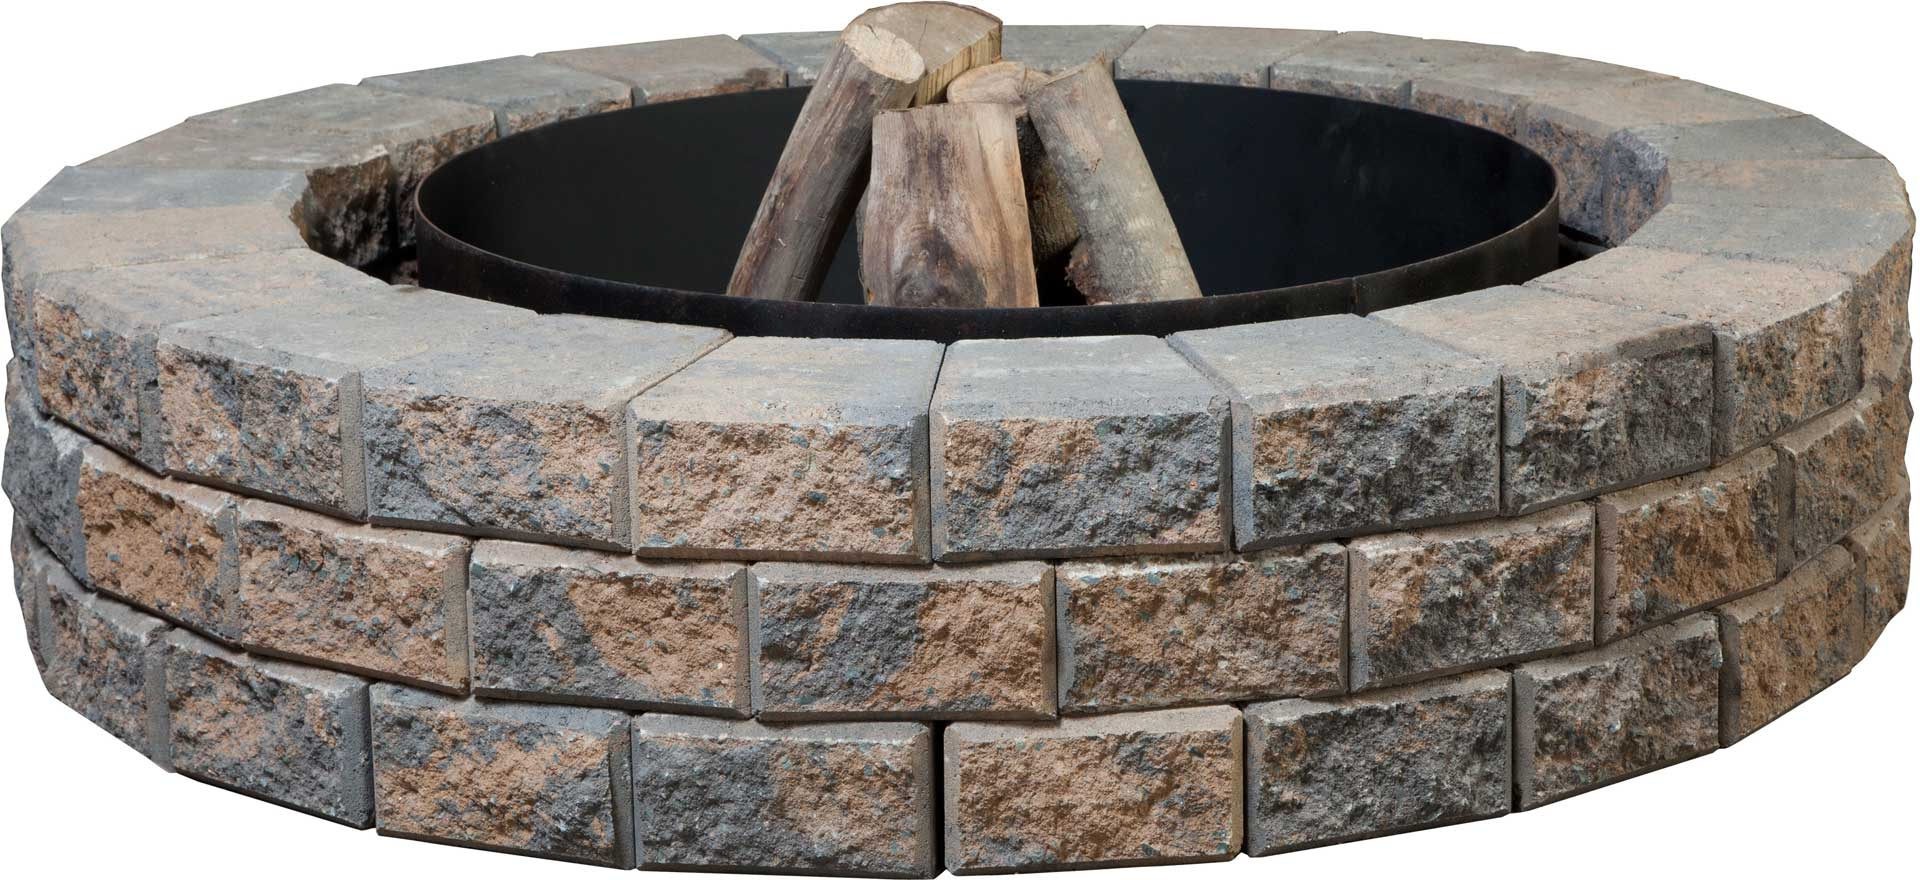 fire pits nantucket stackstone fire pit kit shaw brick. Black Bedroom Furniture Sets. Home Design Ideas